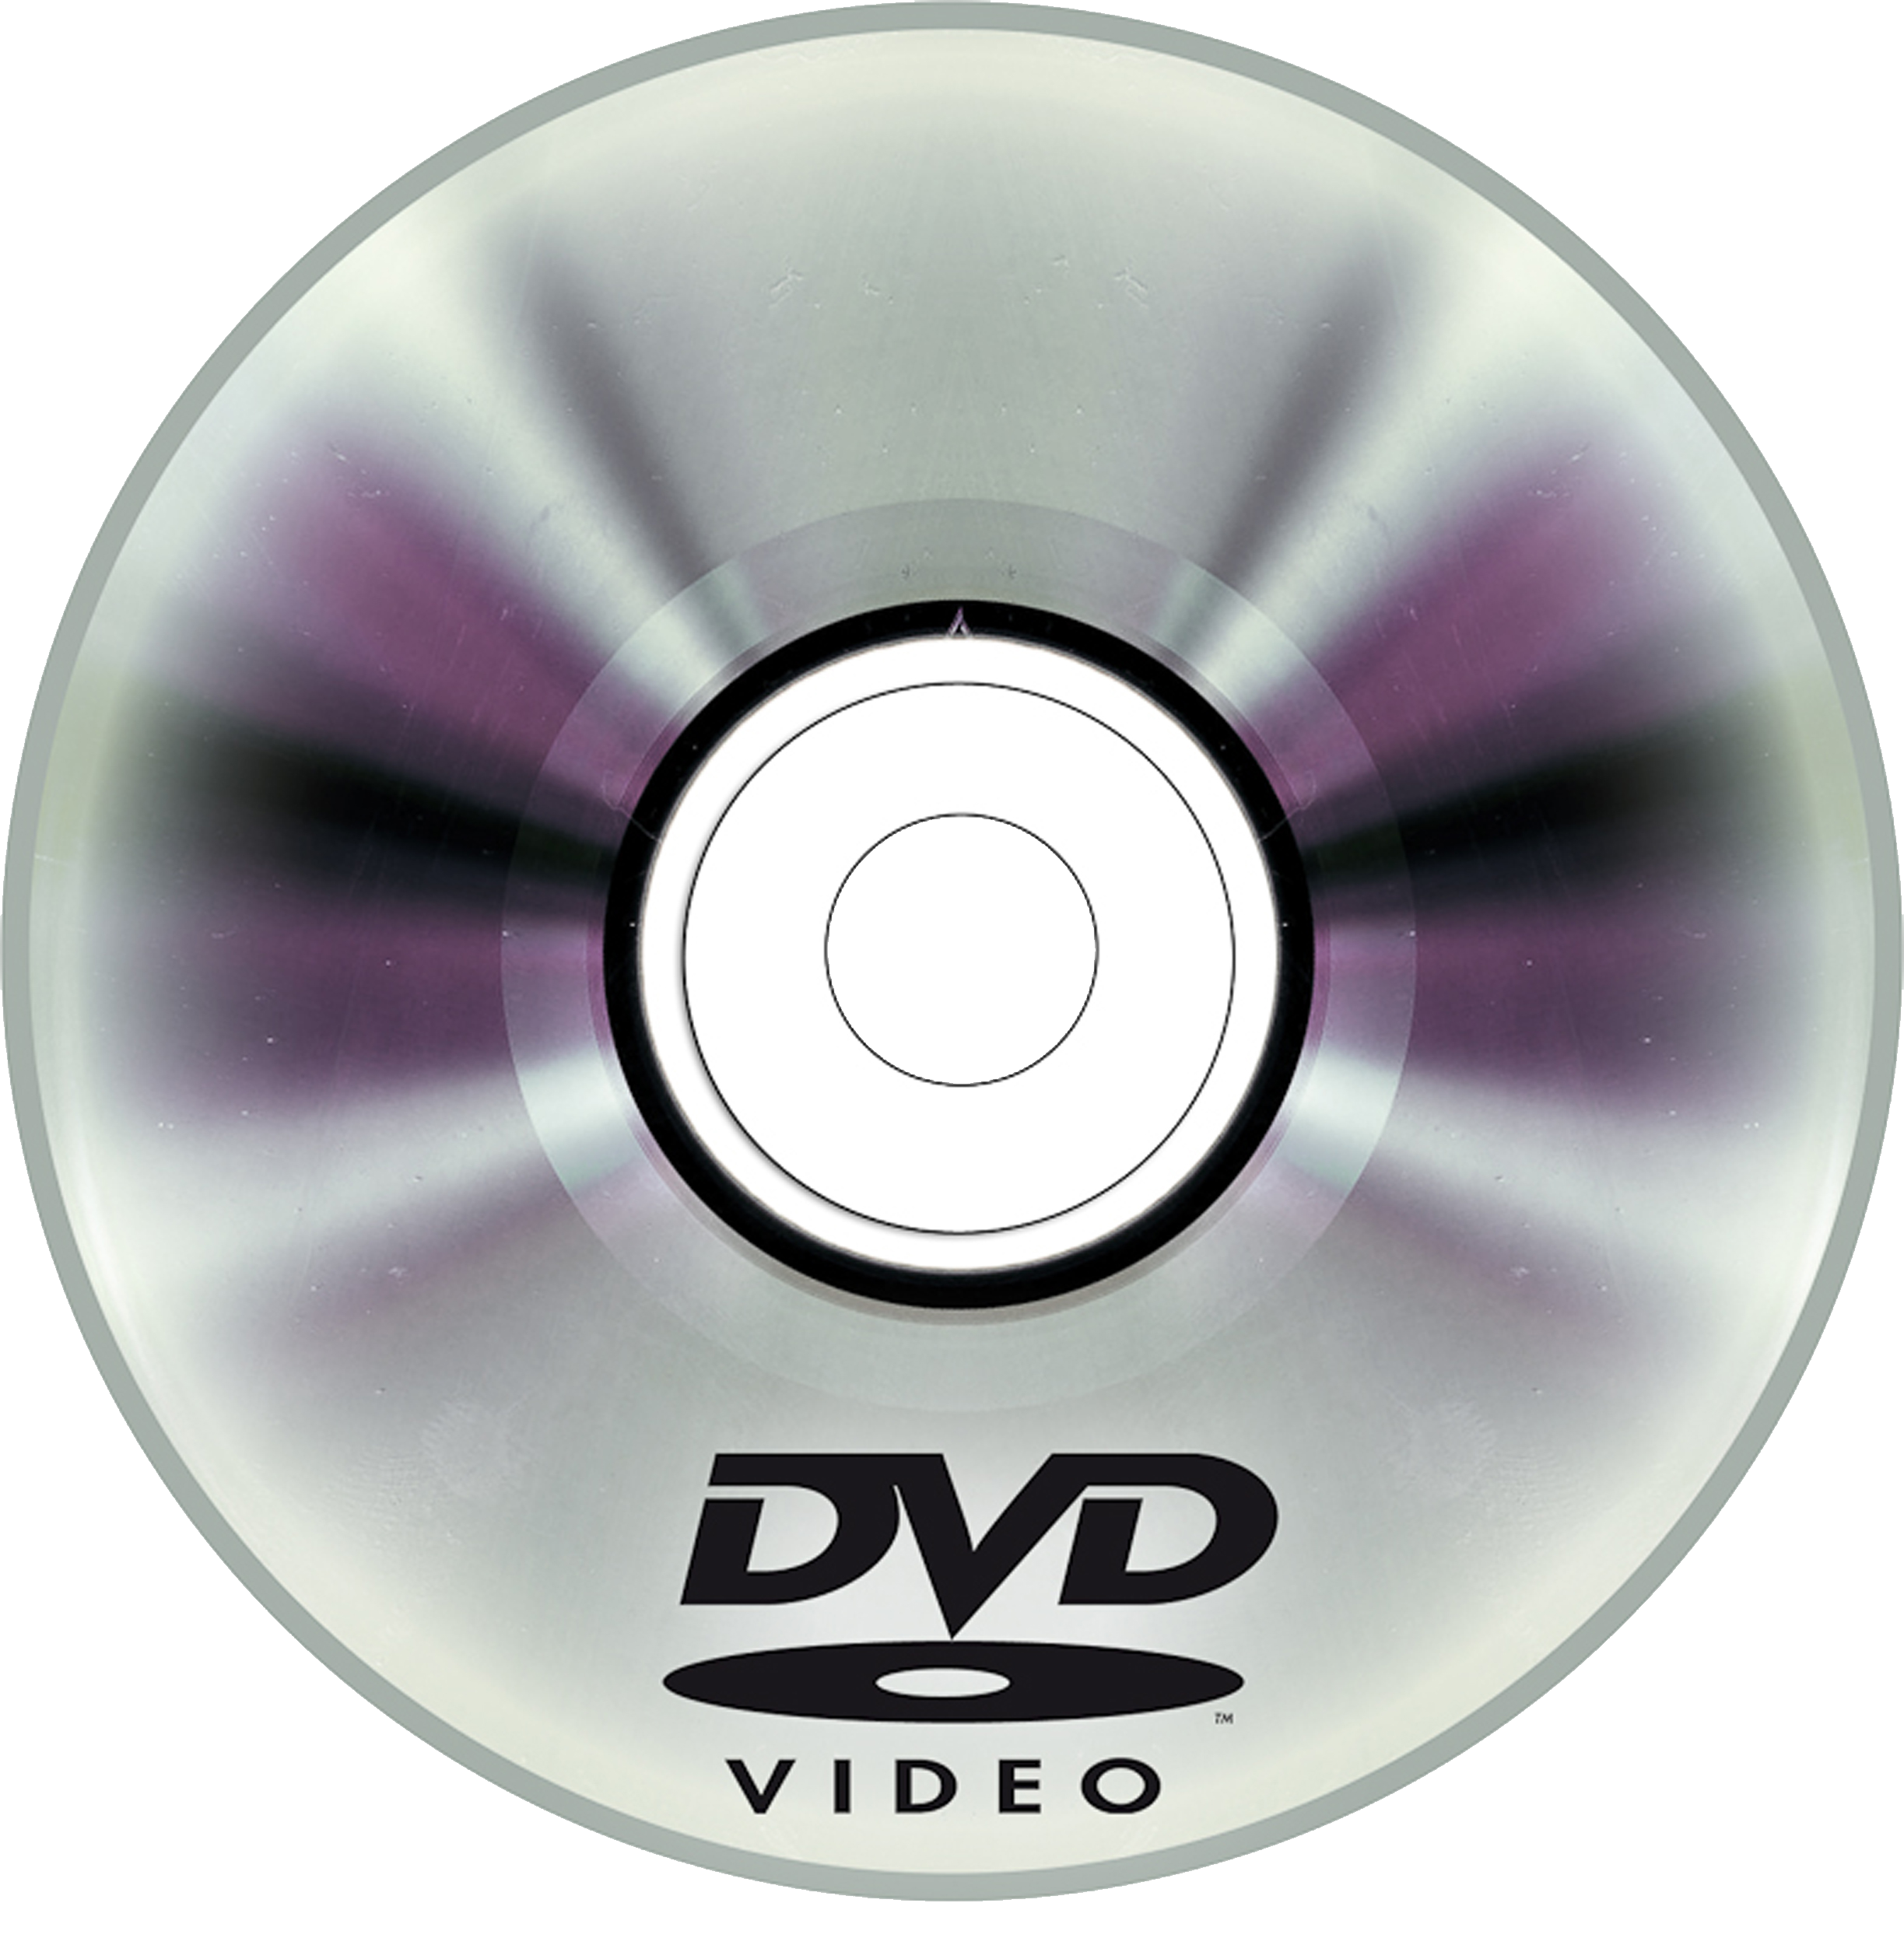 cd dvd png image purepng free transparent cc0 png image library